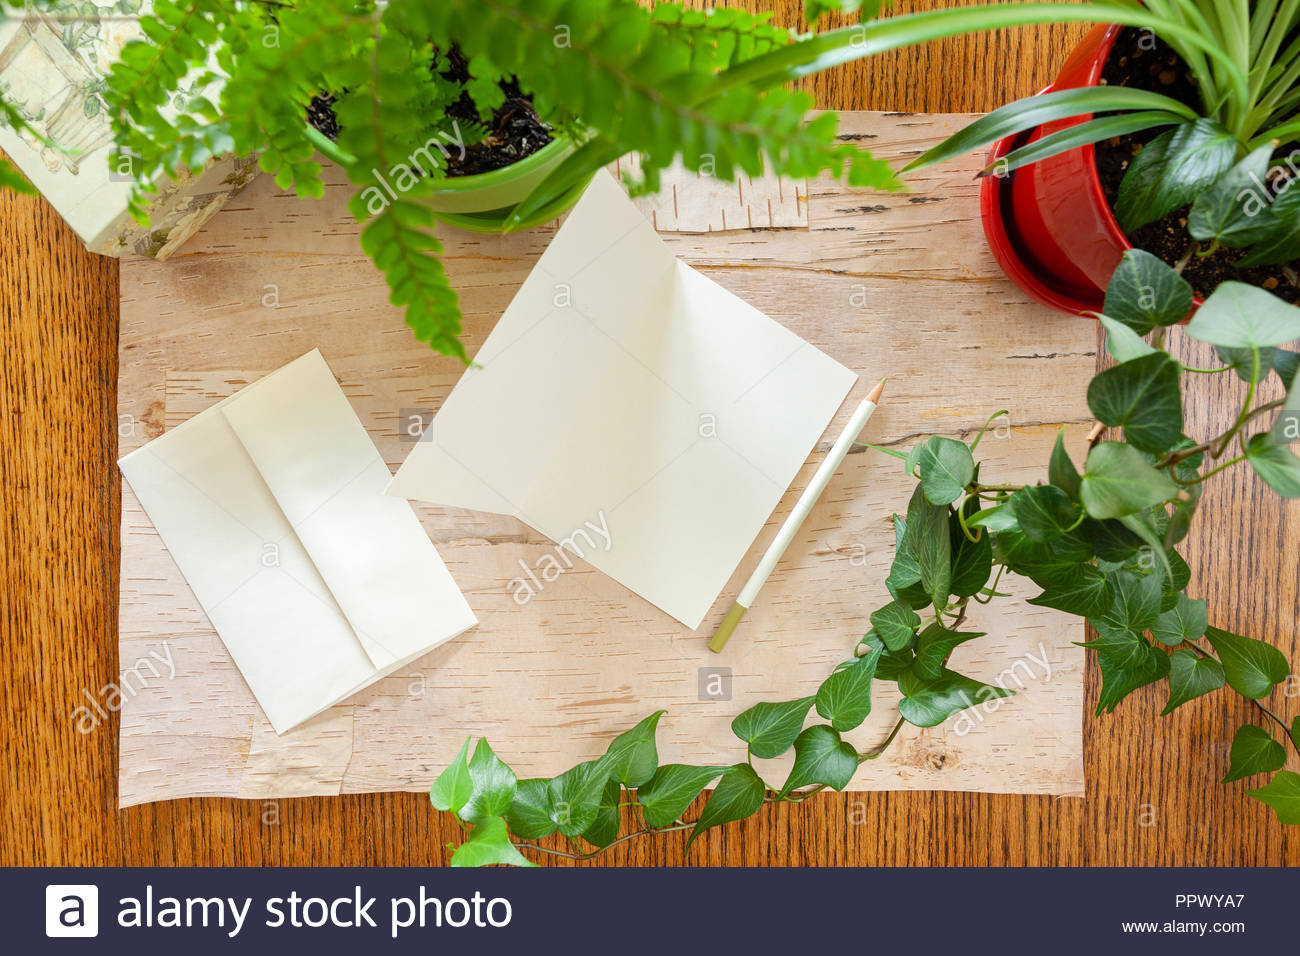 Wood and birch bark background with blank note cards bordered by potted houseplants shot from above with room for copy space. Setting in natural dayli - Stock Image